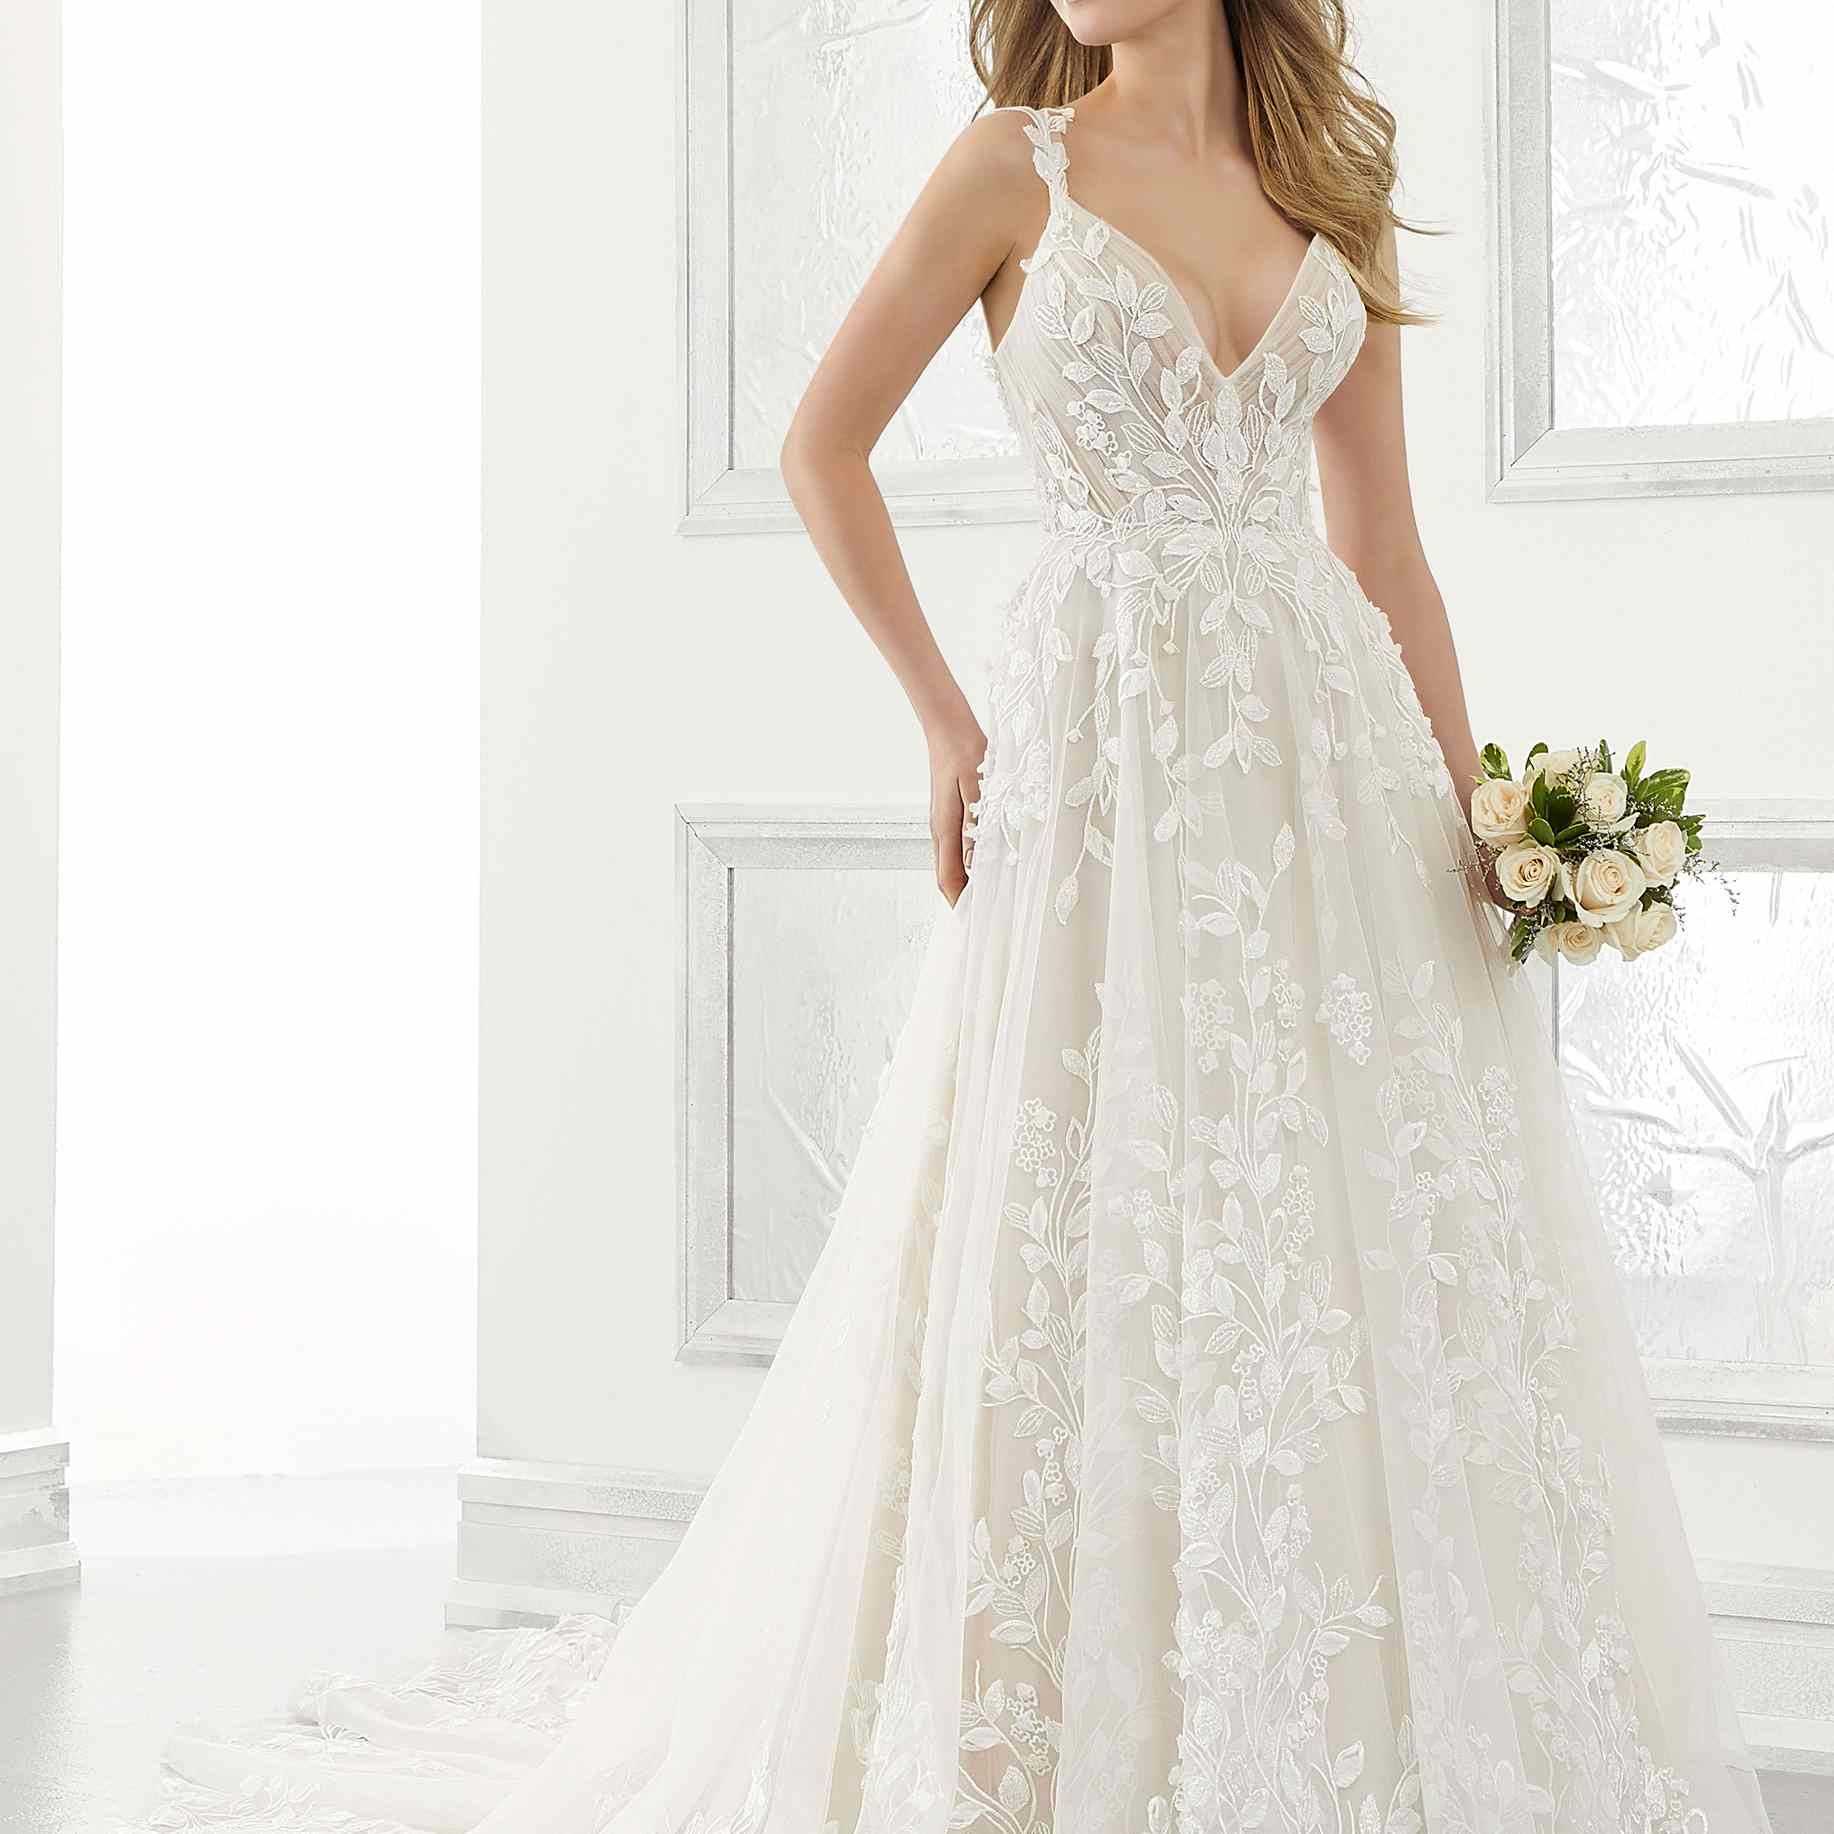 New Morilee By Madeline Gardner Wedding Dresses Plus Past Collections